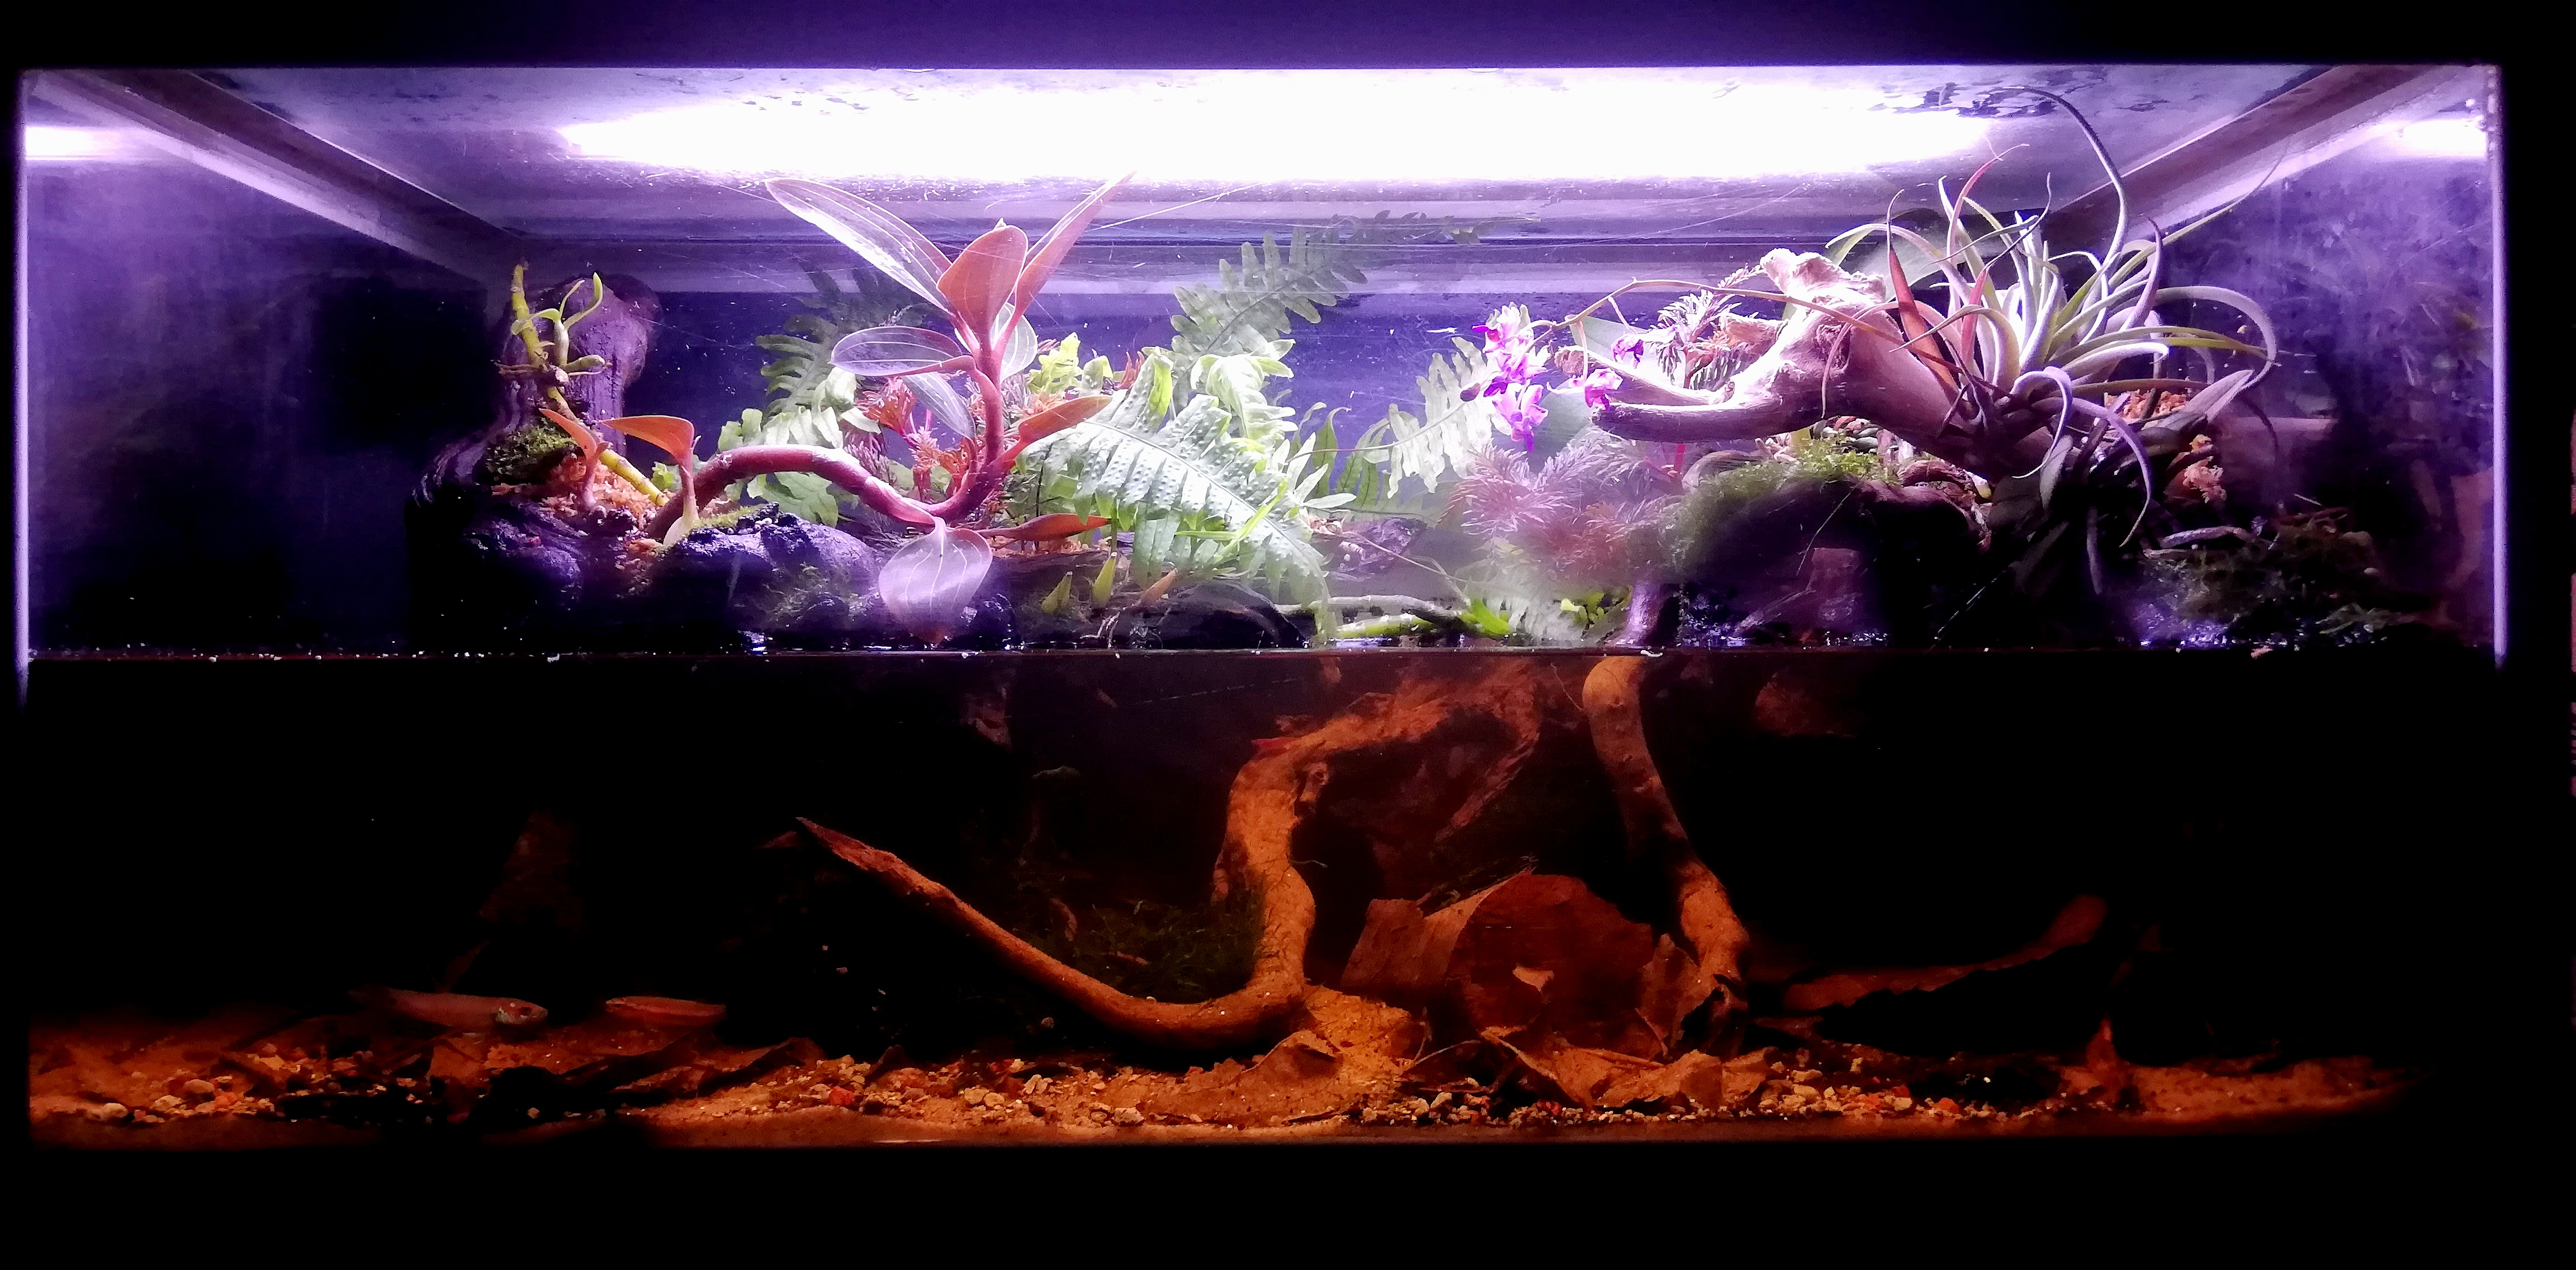 Betta gladiator akvariet 125 liter